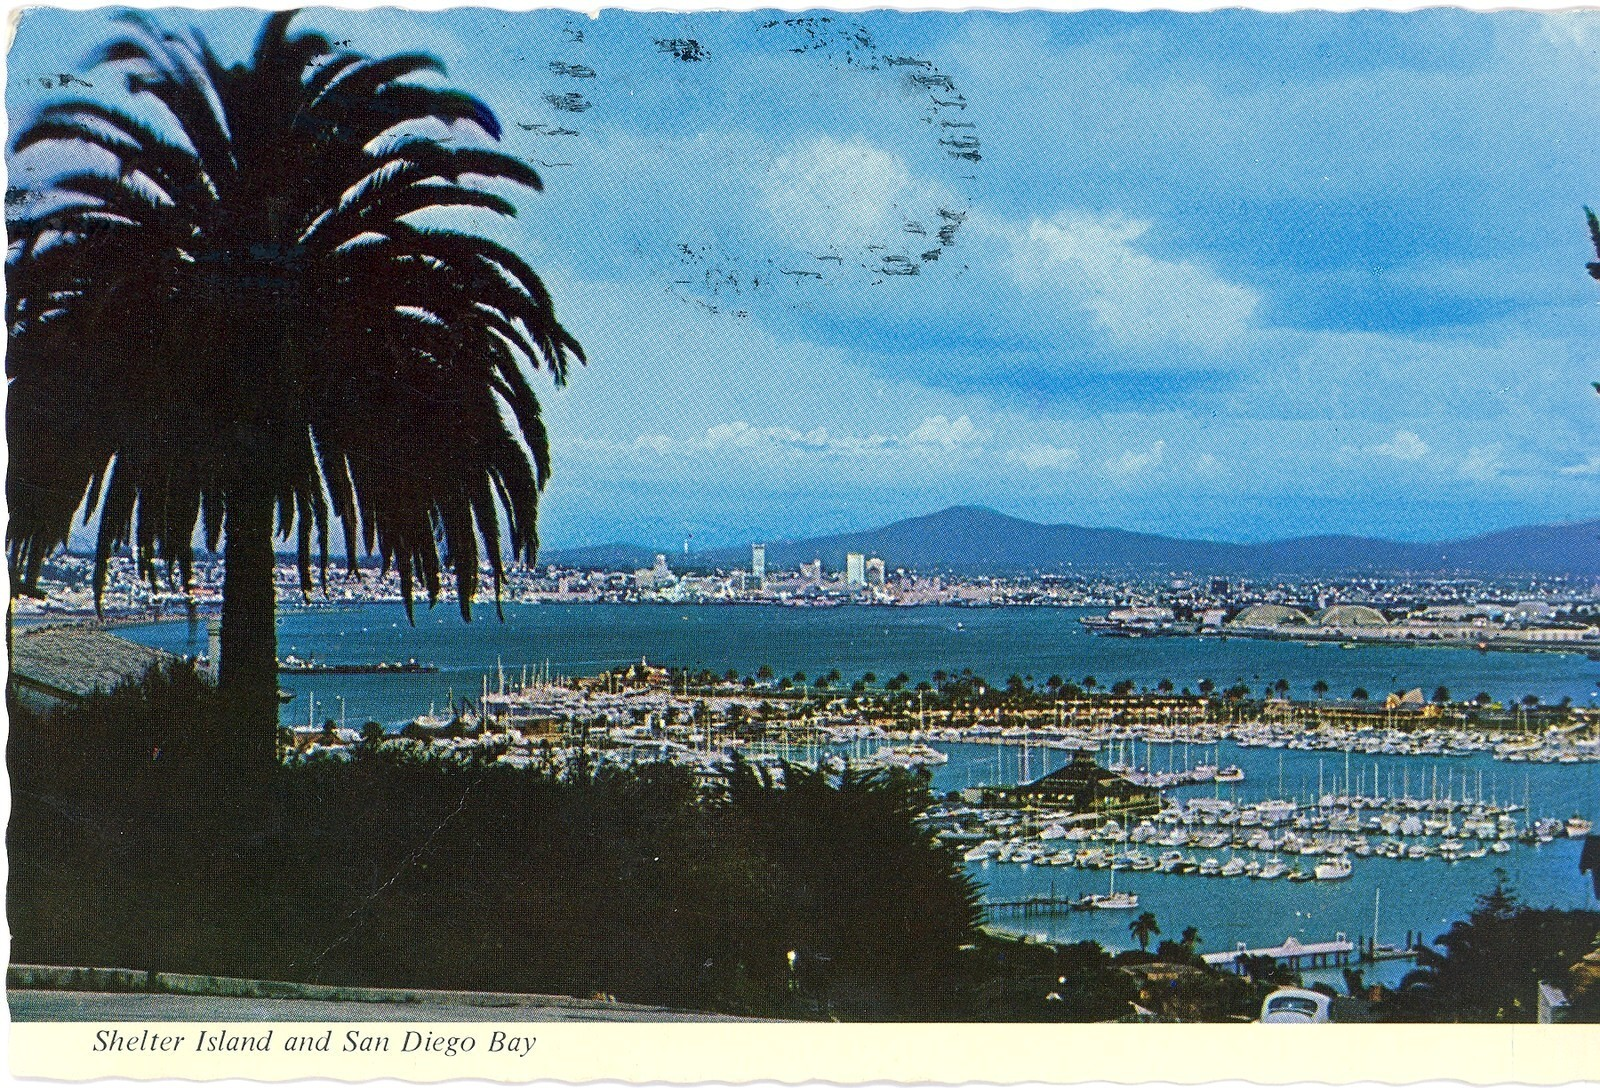 A 1960s Era Postcard Showing The View From Point Loma Looking Out Over San  Diego Bay